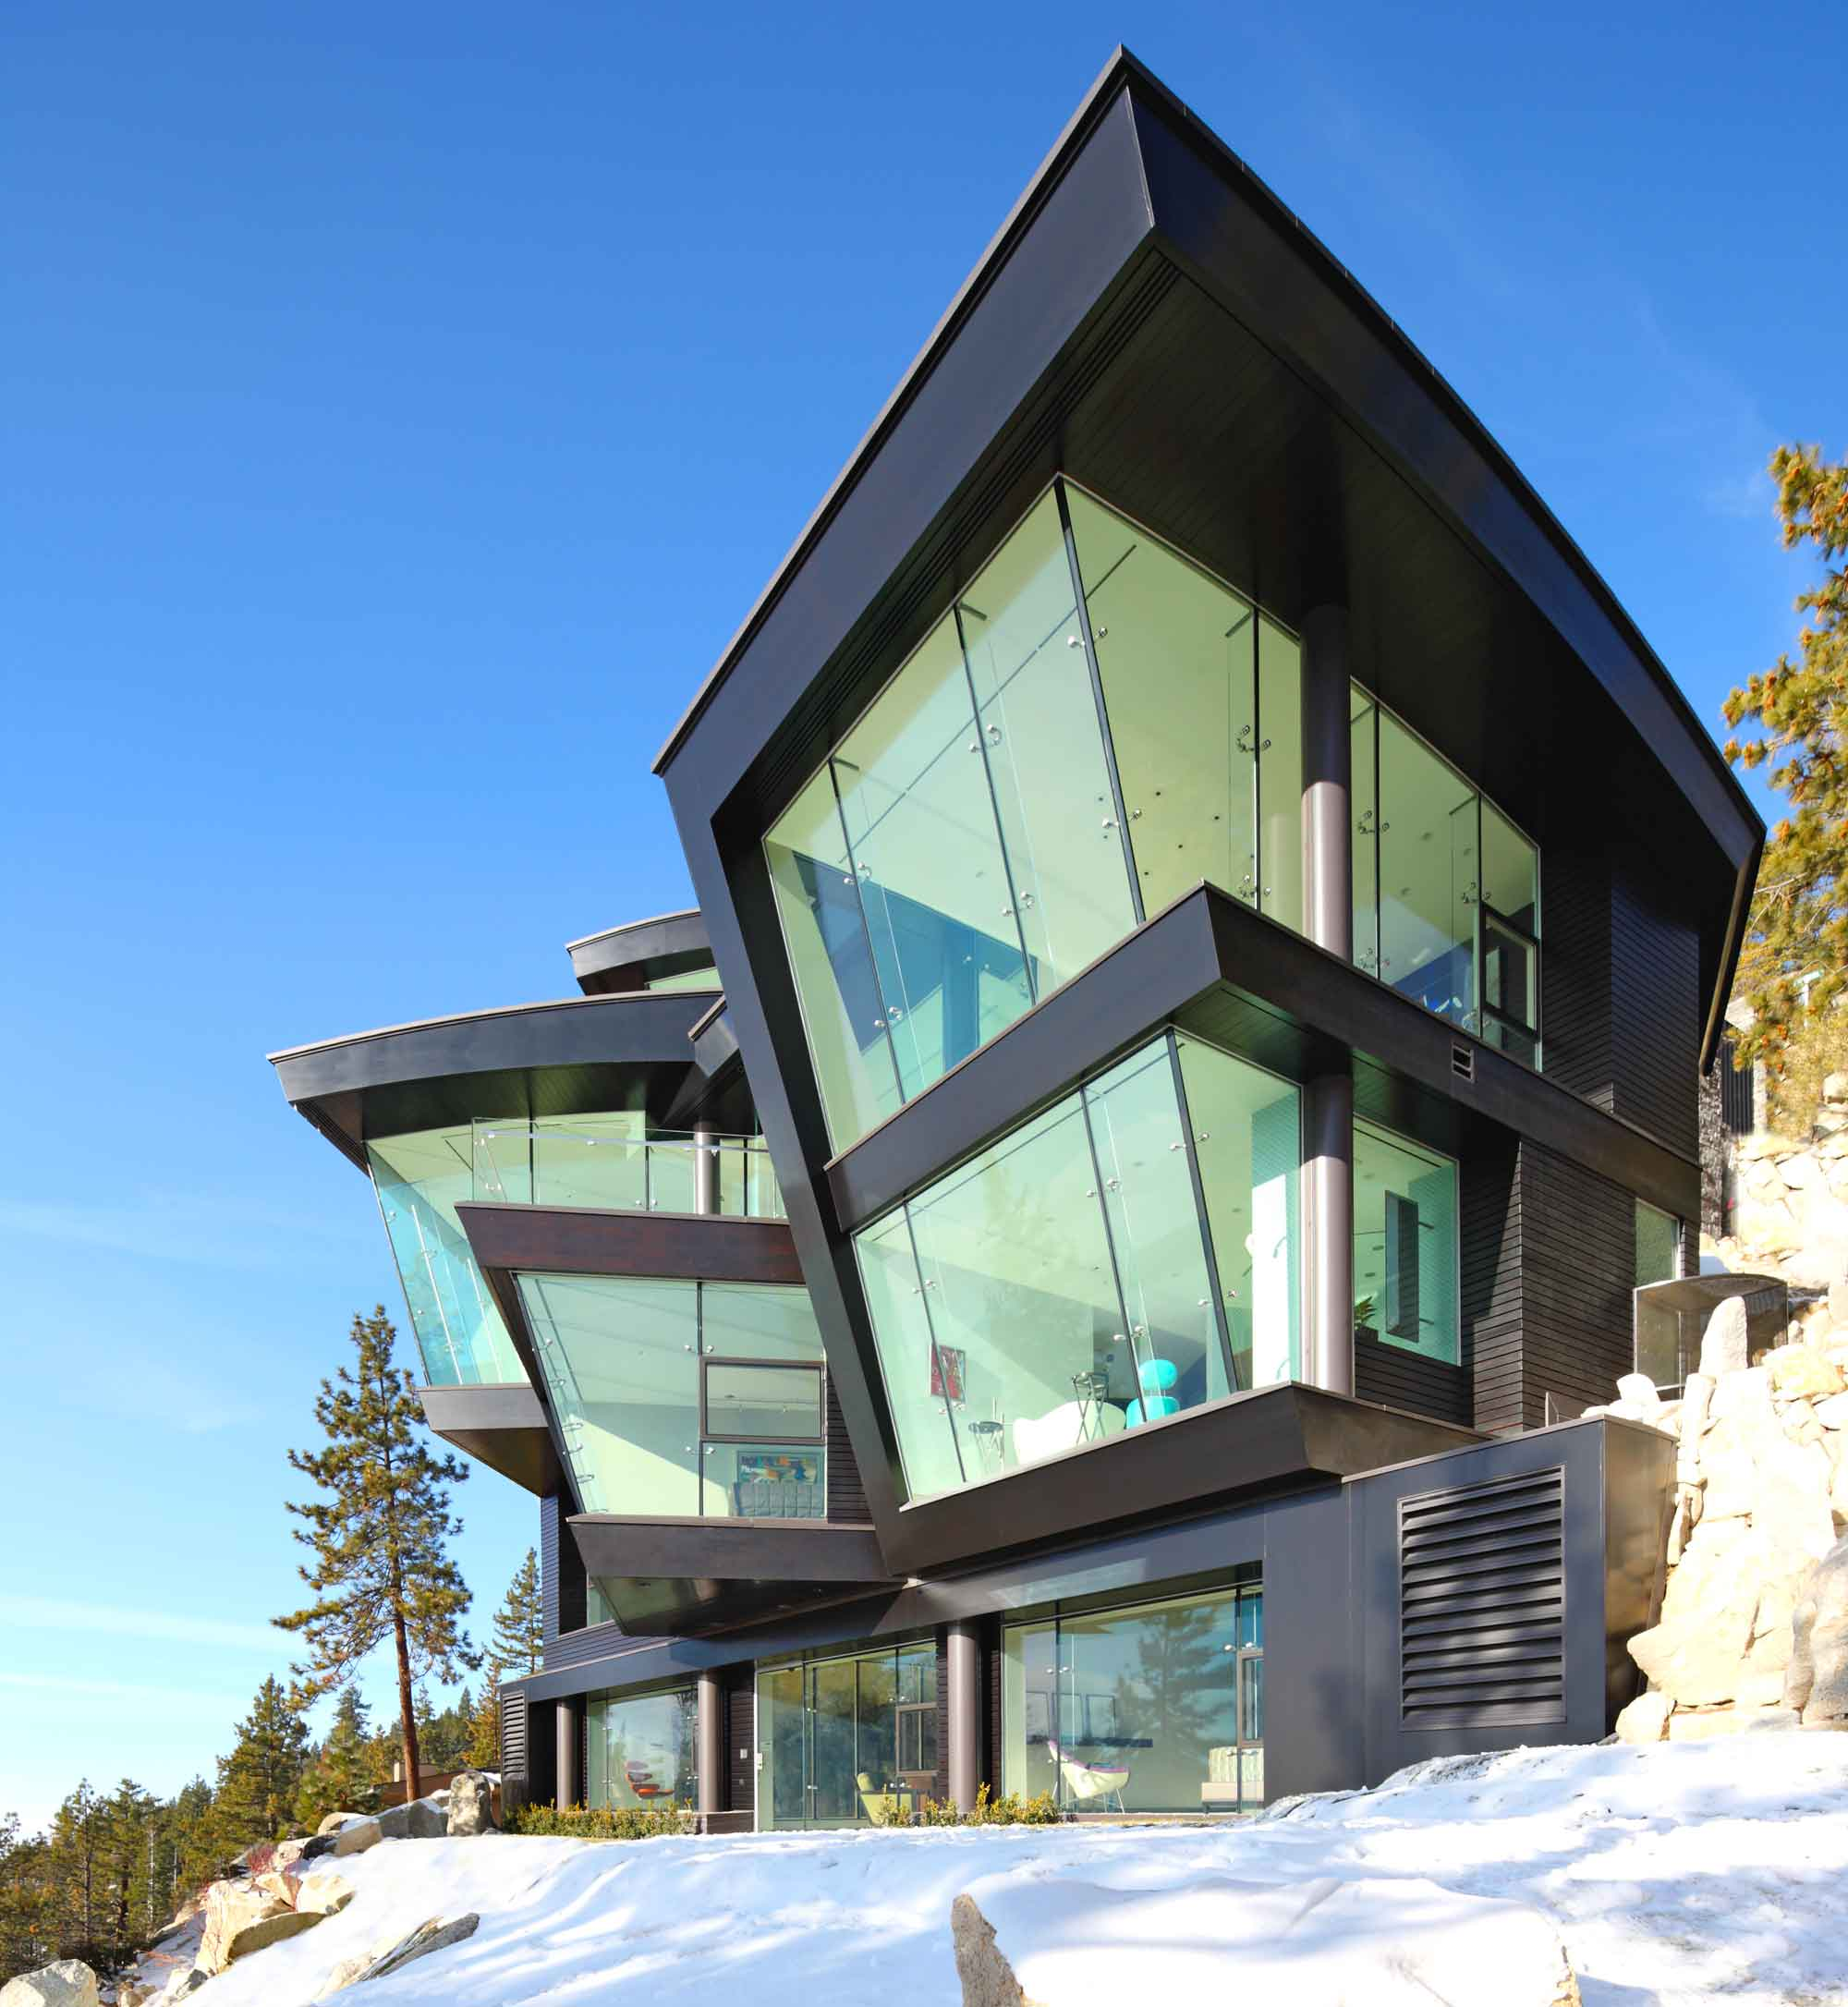 Lake Tahoe and the Sierra skyline from the dramatic backdrop to this ultra-modern lakefront estate, featuring angled walls of glass, a high-tech glass-enclosed elevator, and a six-story glass staircase.